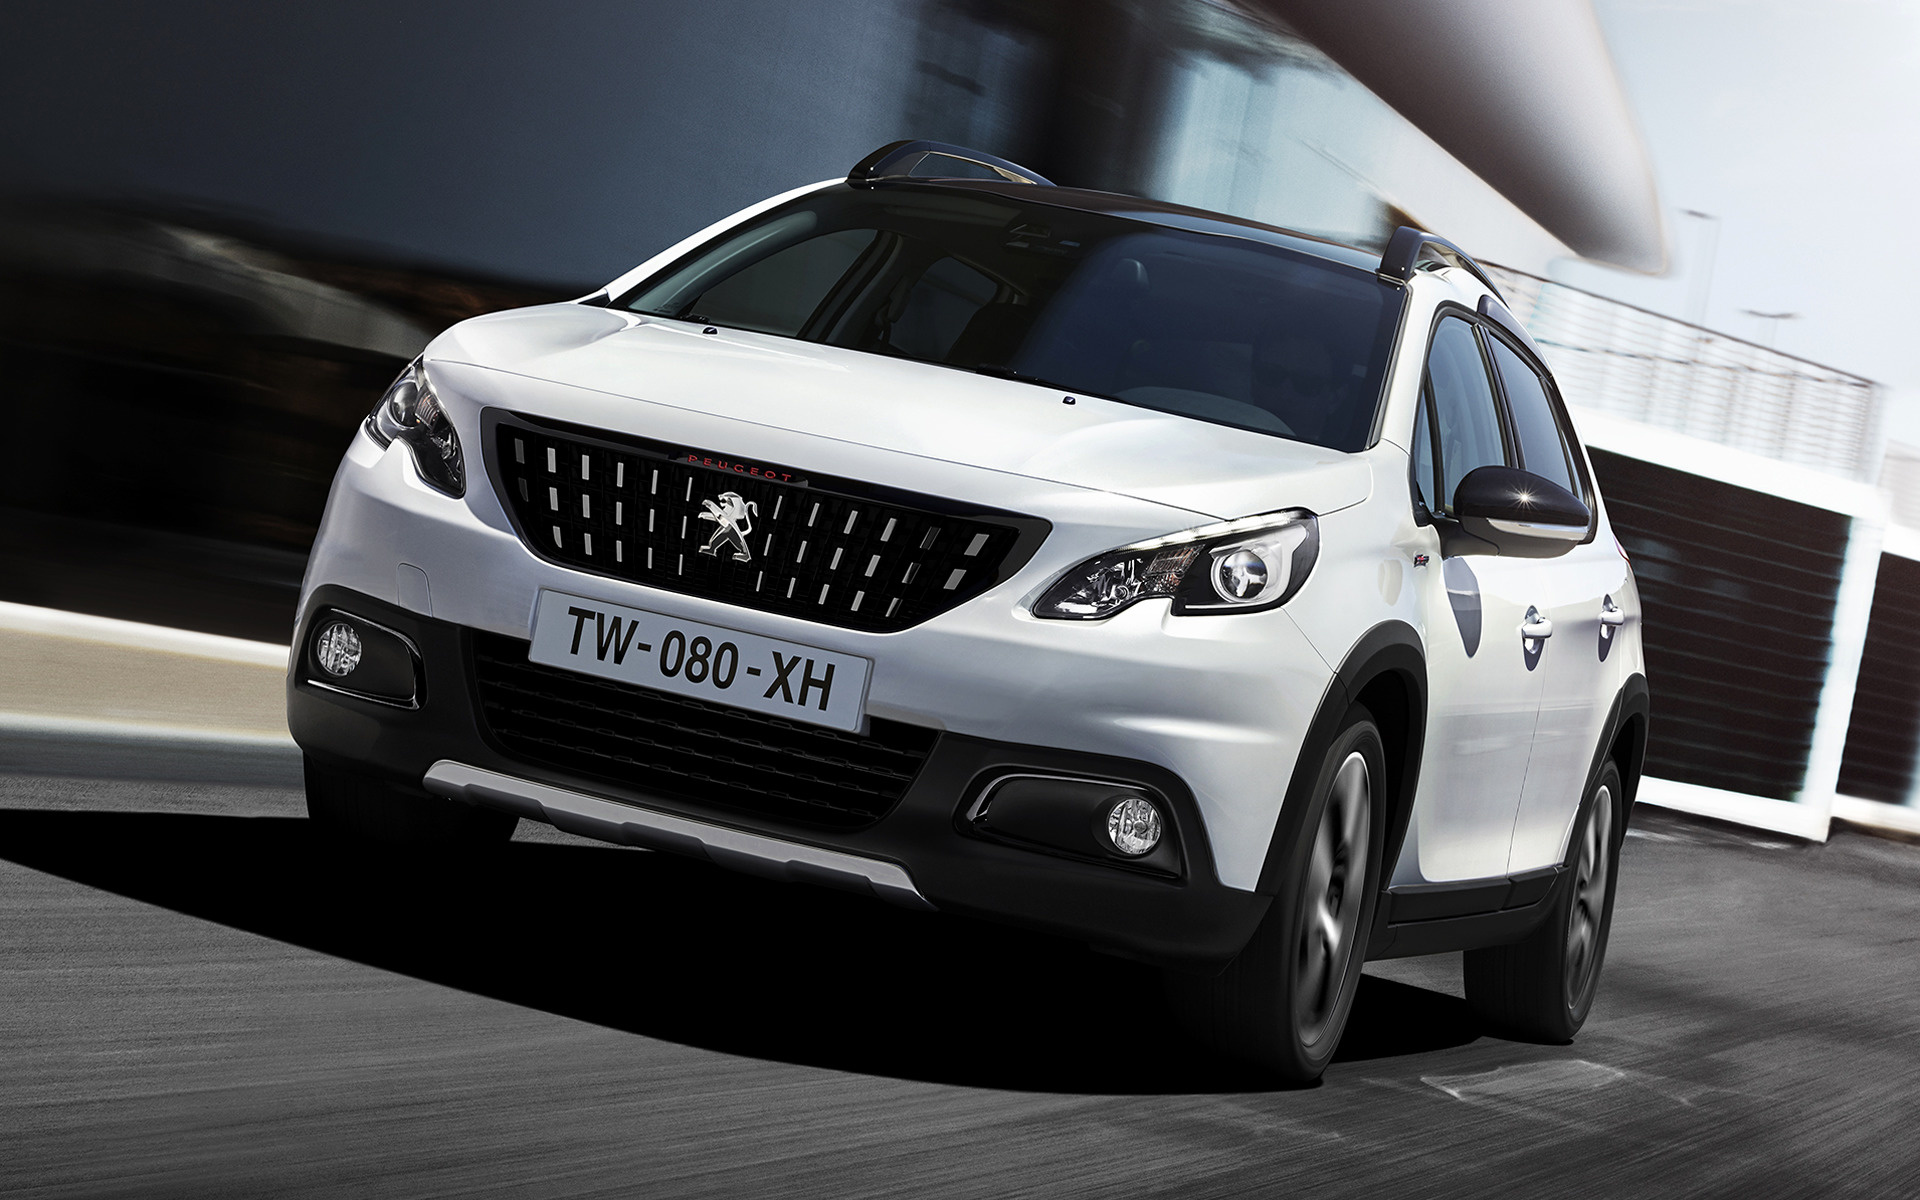 All Car Brands >> 2016 Peugeot 2008 GT Line - Wallpapers and HD Images | Car ...